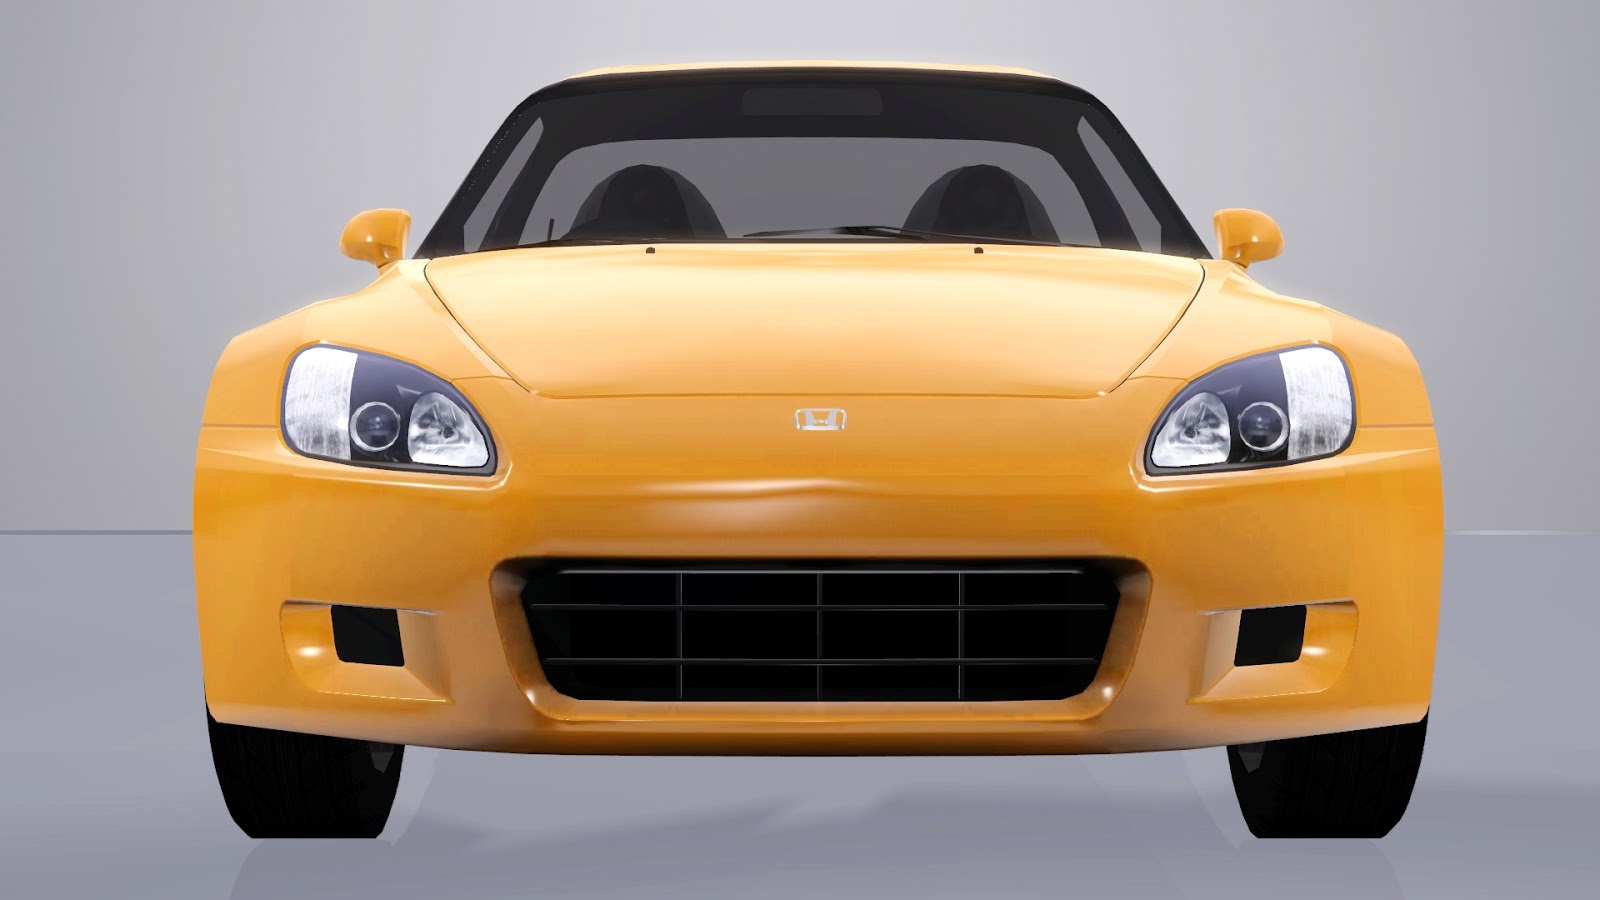 2003 Honda S2000 by Fresh-Prince